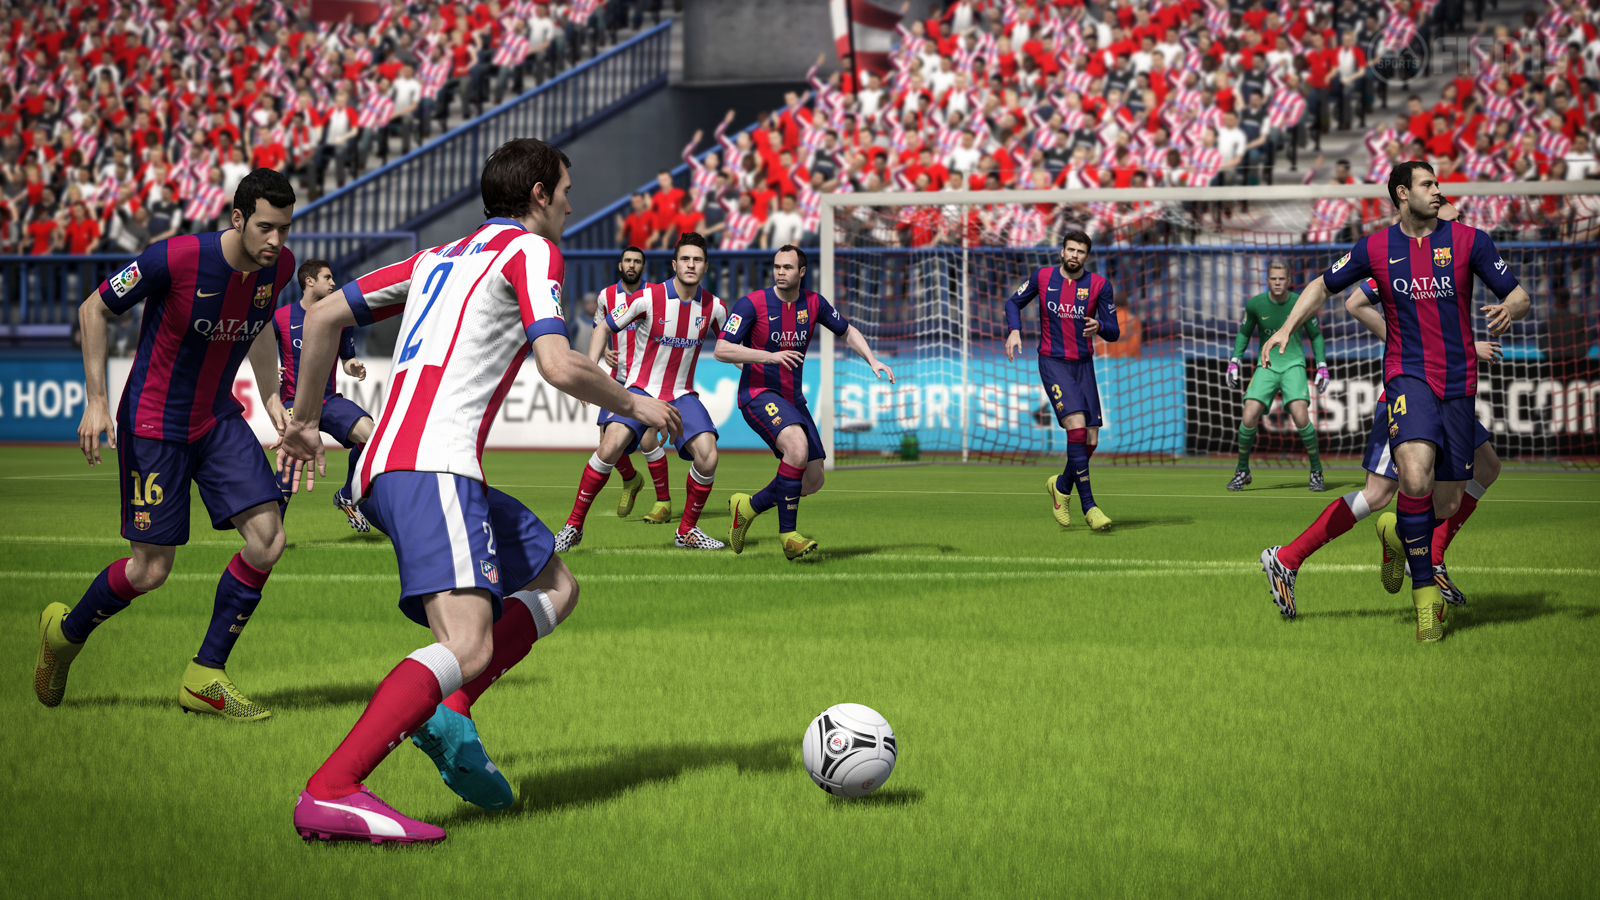 FIFA 15 on PS3 and Xbox 360 won't have Pro Clubs mode